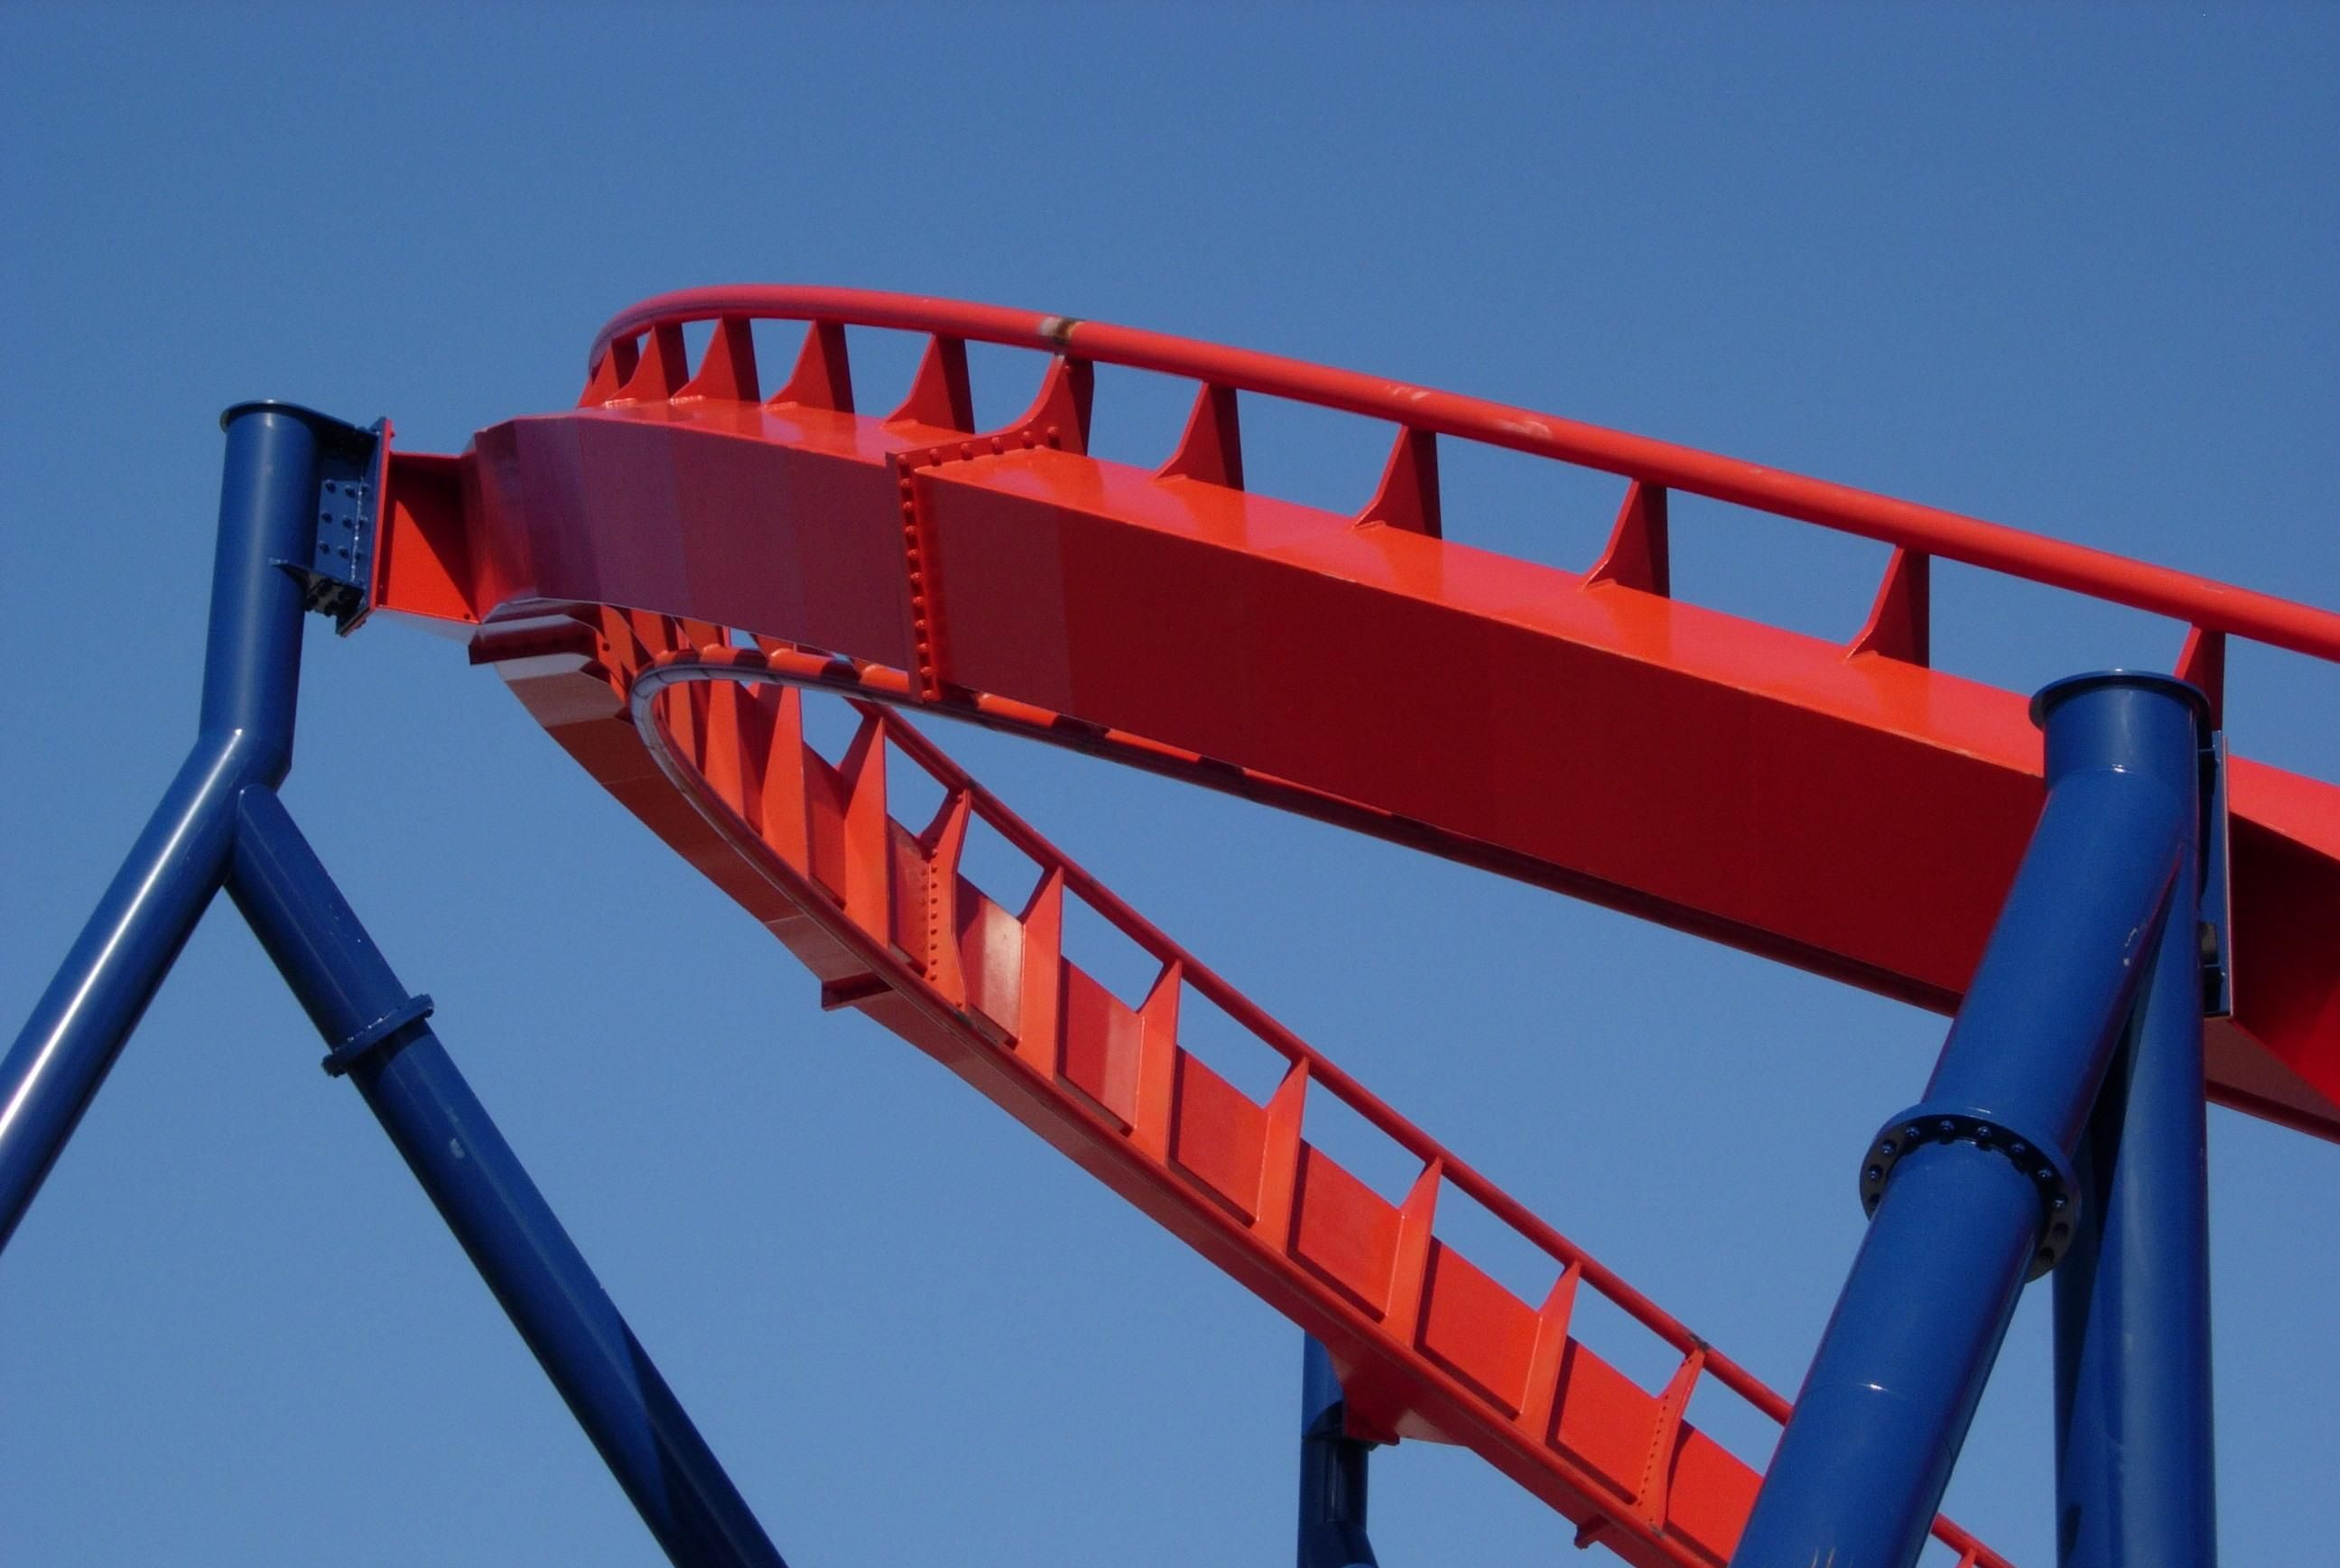 File:Roller coaster track.jpg - Wikimedia Commons